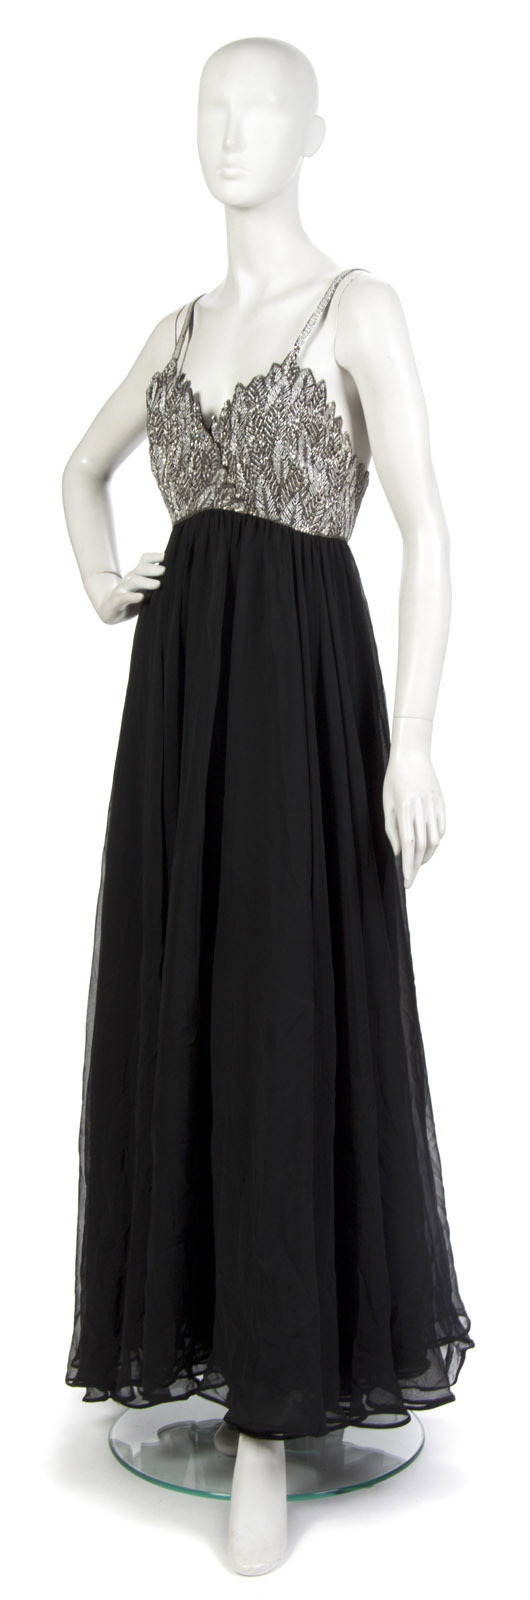 Giorgio of Beverly Hills silver beaded and black chiffon evening gown. Labeled: Giorgio. Property from the Collection of Gladys Knight, Las Vegas, Nevada. Estimate: $400-$600. Image courtesy Leslie Hindman Auctioneers.